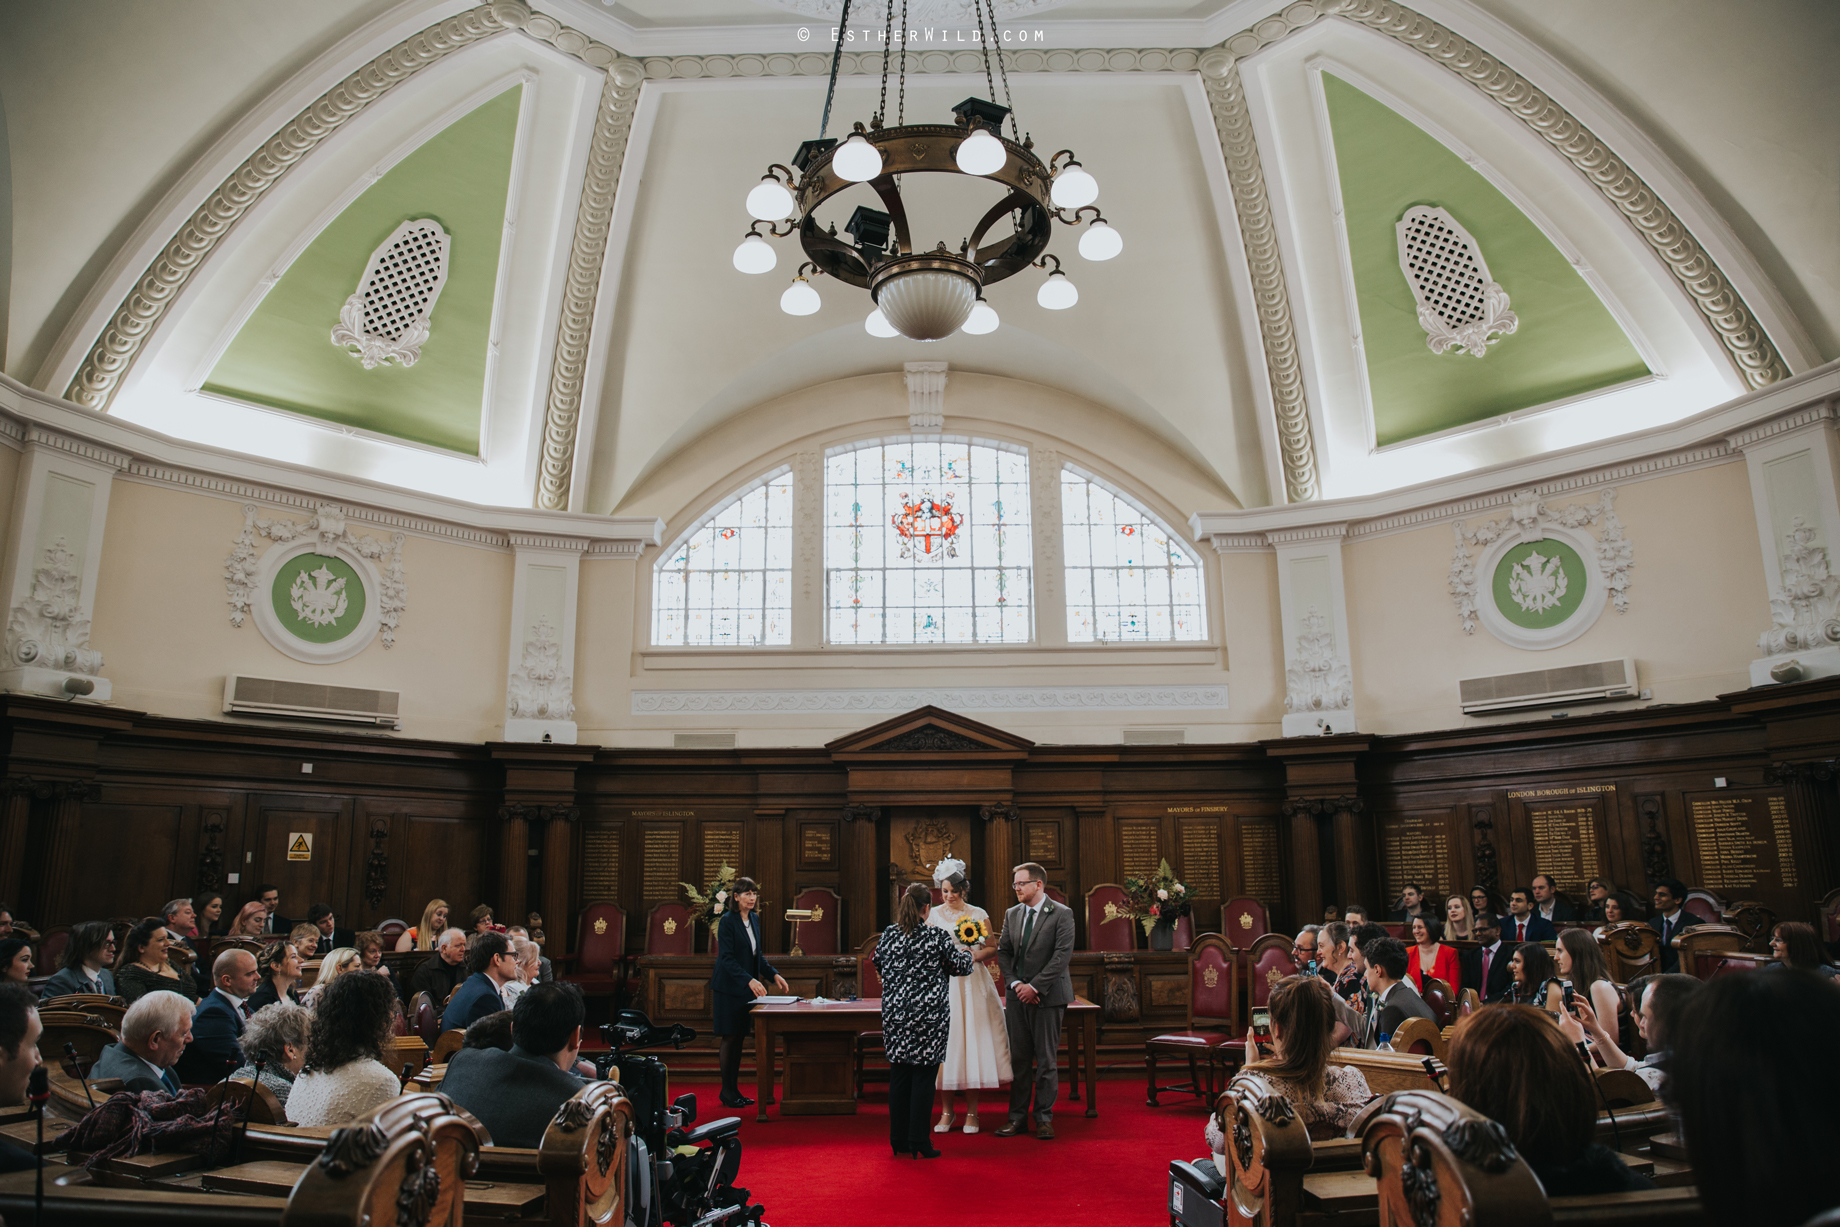 Islington_Town_Hall_Assembly_Hall_Council_Chamber_The_Star_Pub_London_Sacred_Wedding_Copyright_Esther_Wild_Photographer_IMG_0490.jpg